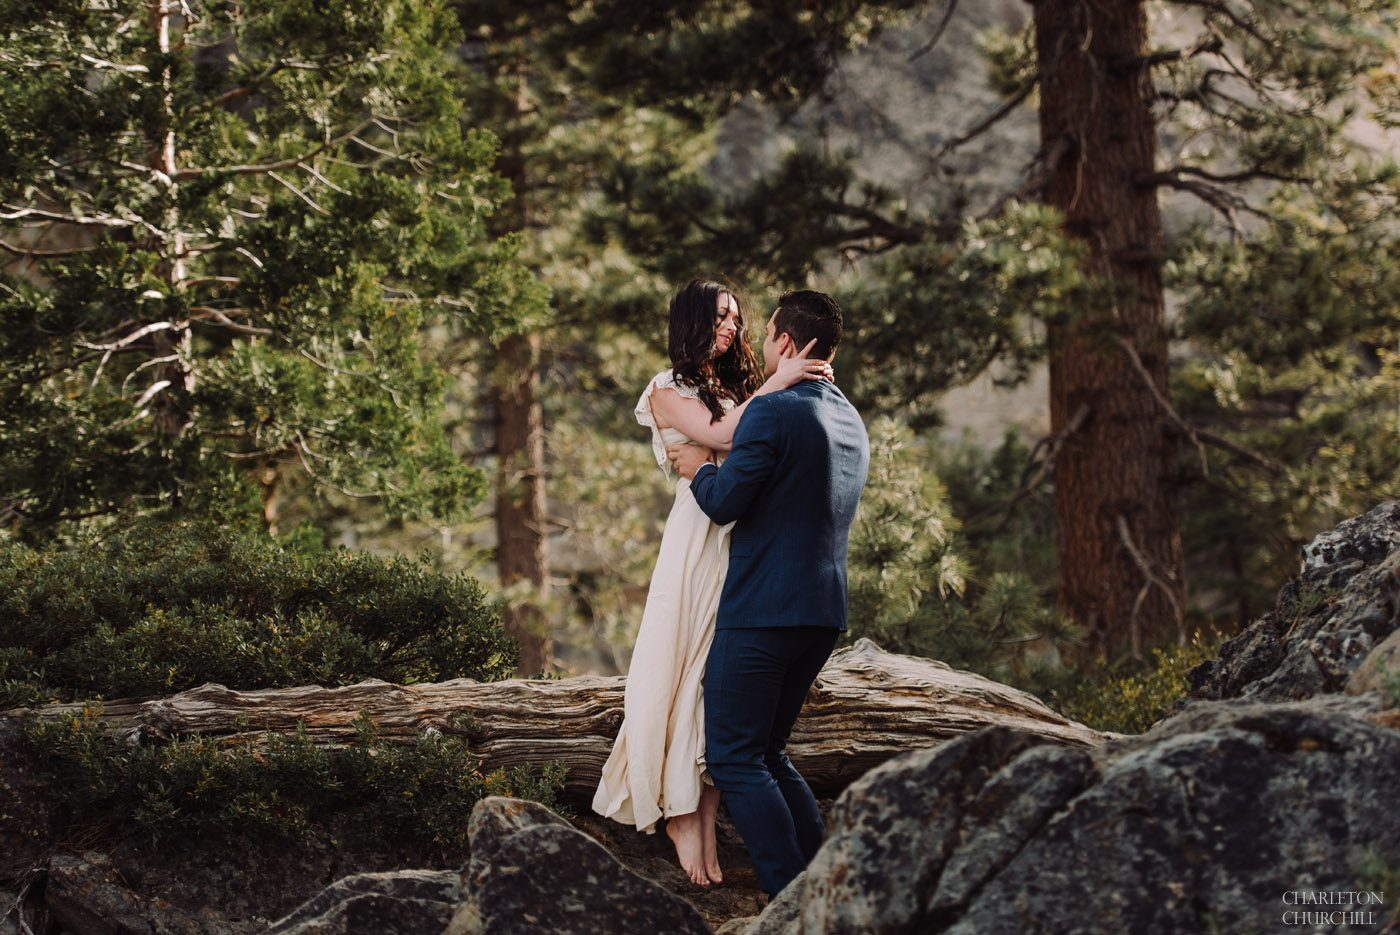 lovely whimsical couple photos in the wilderness el dorado county of tahoe woods